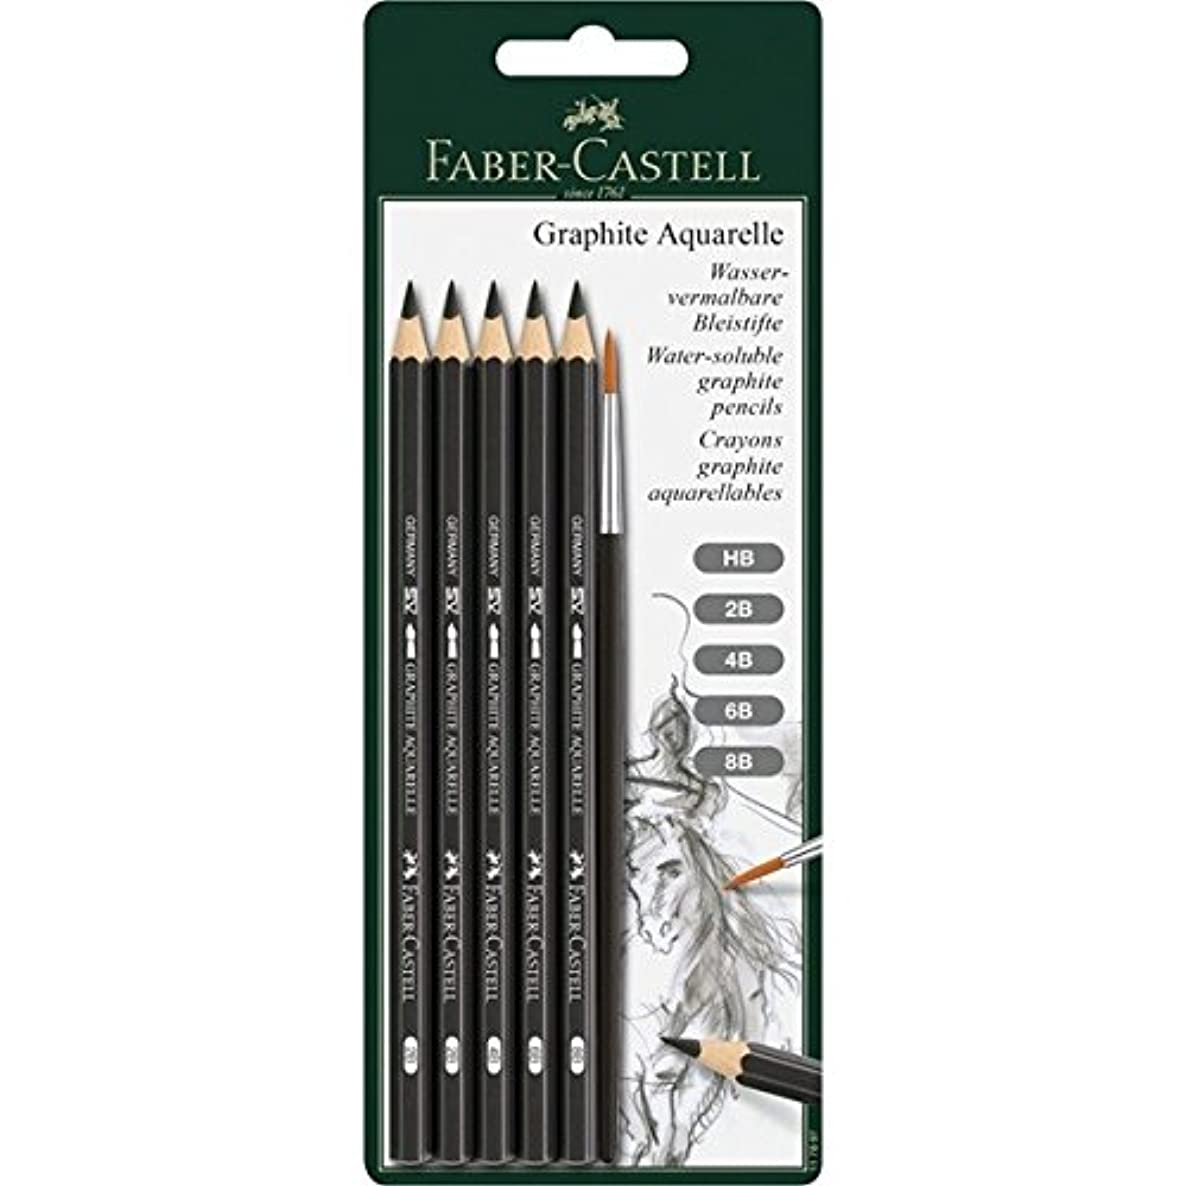 Faber-Castell Graphite Aquarelle Water-soluble Pencils assorted set of 5 with brush,Grey